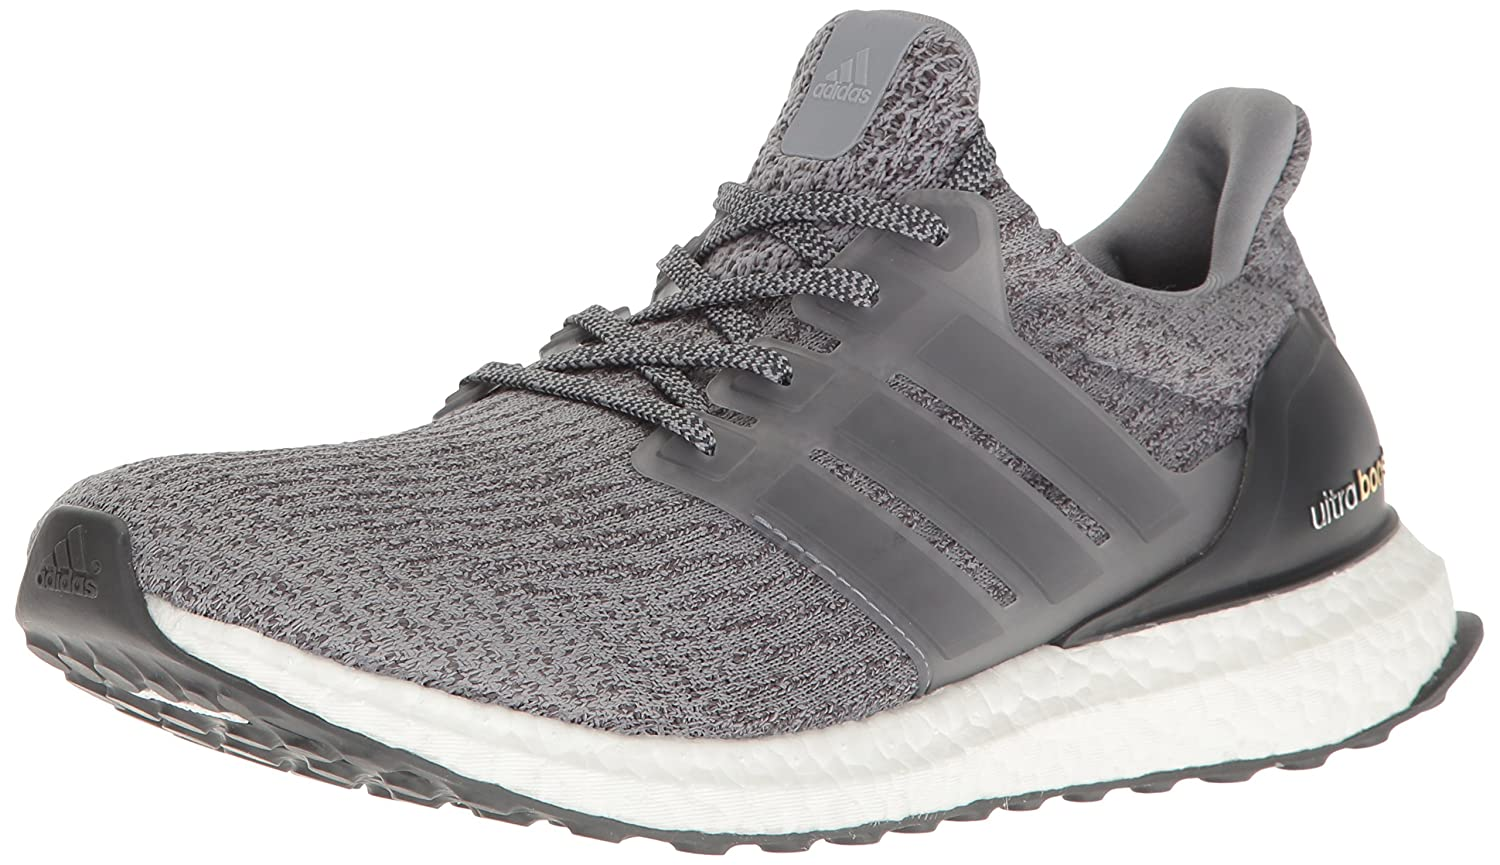 adidas Performance Men's Ultra Boost M Running Shoe B01LP673M0 7.5 M US|Grey/Grey/Dark Grey Heather